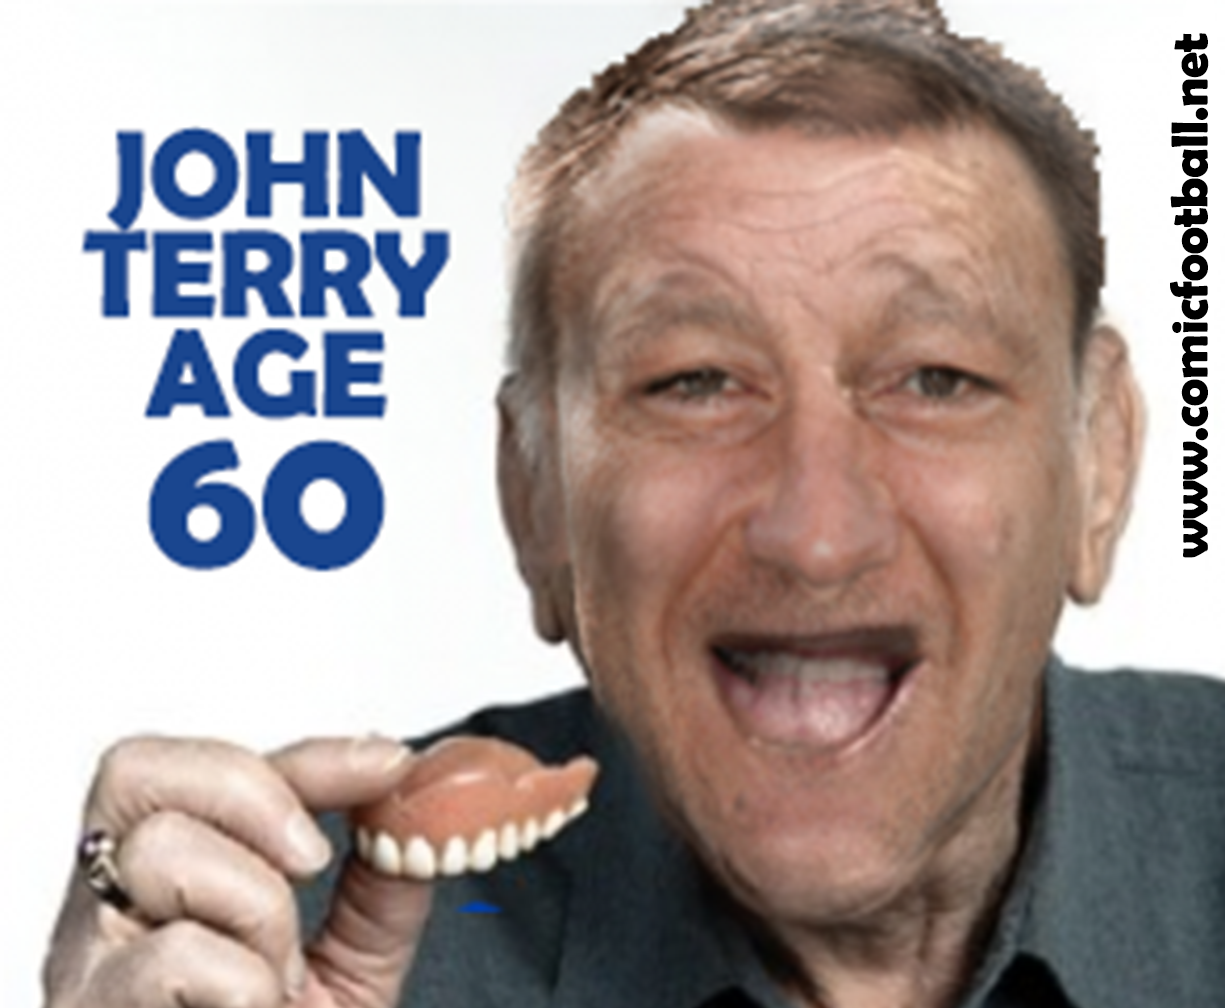 terry 60.png